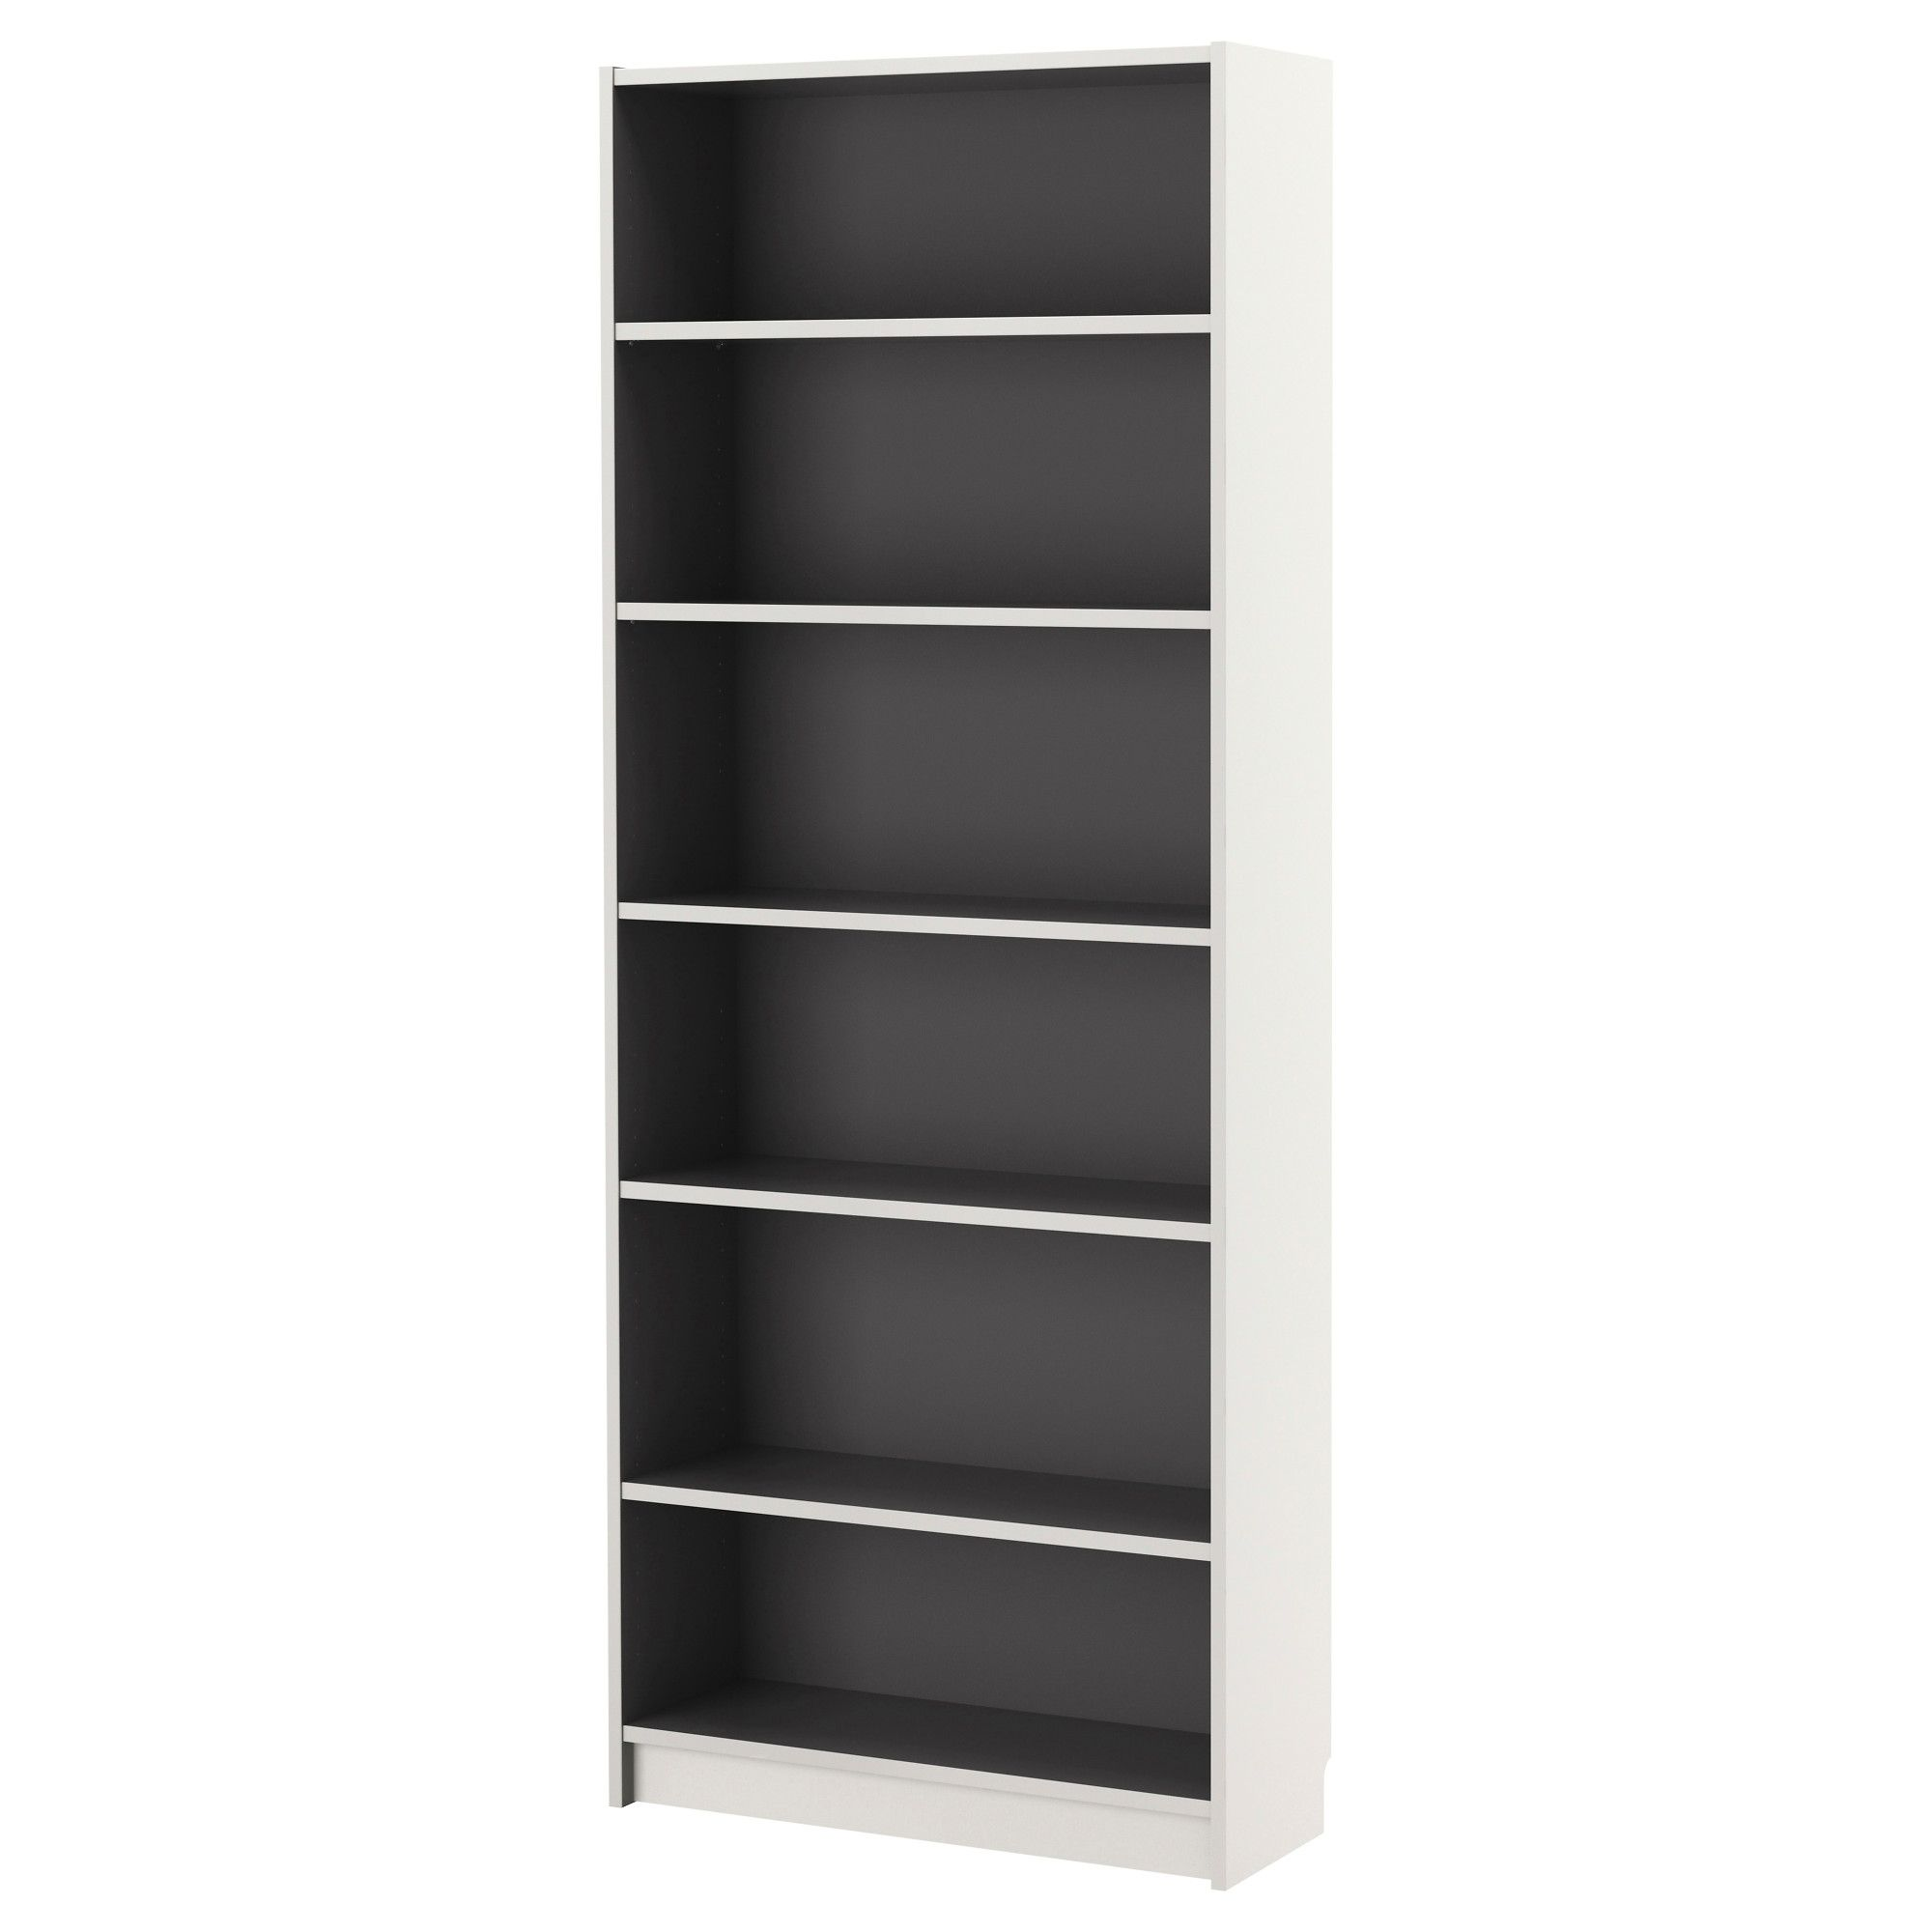 billy bookcase ikea dimensions 31 1 2x11x79 1 2 ja project selects living room. Black Bedroom Furniture Sets. Home Design Ideas